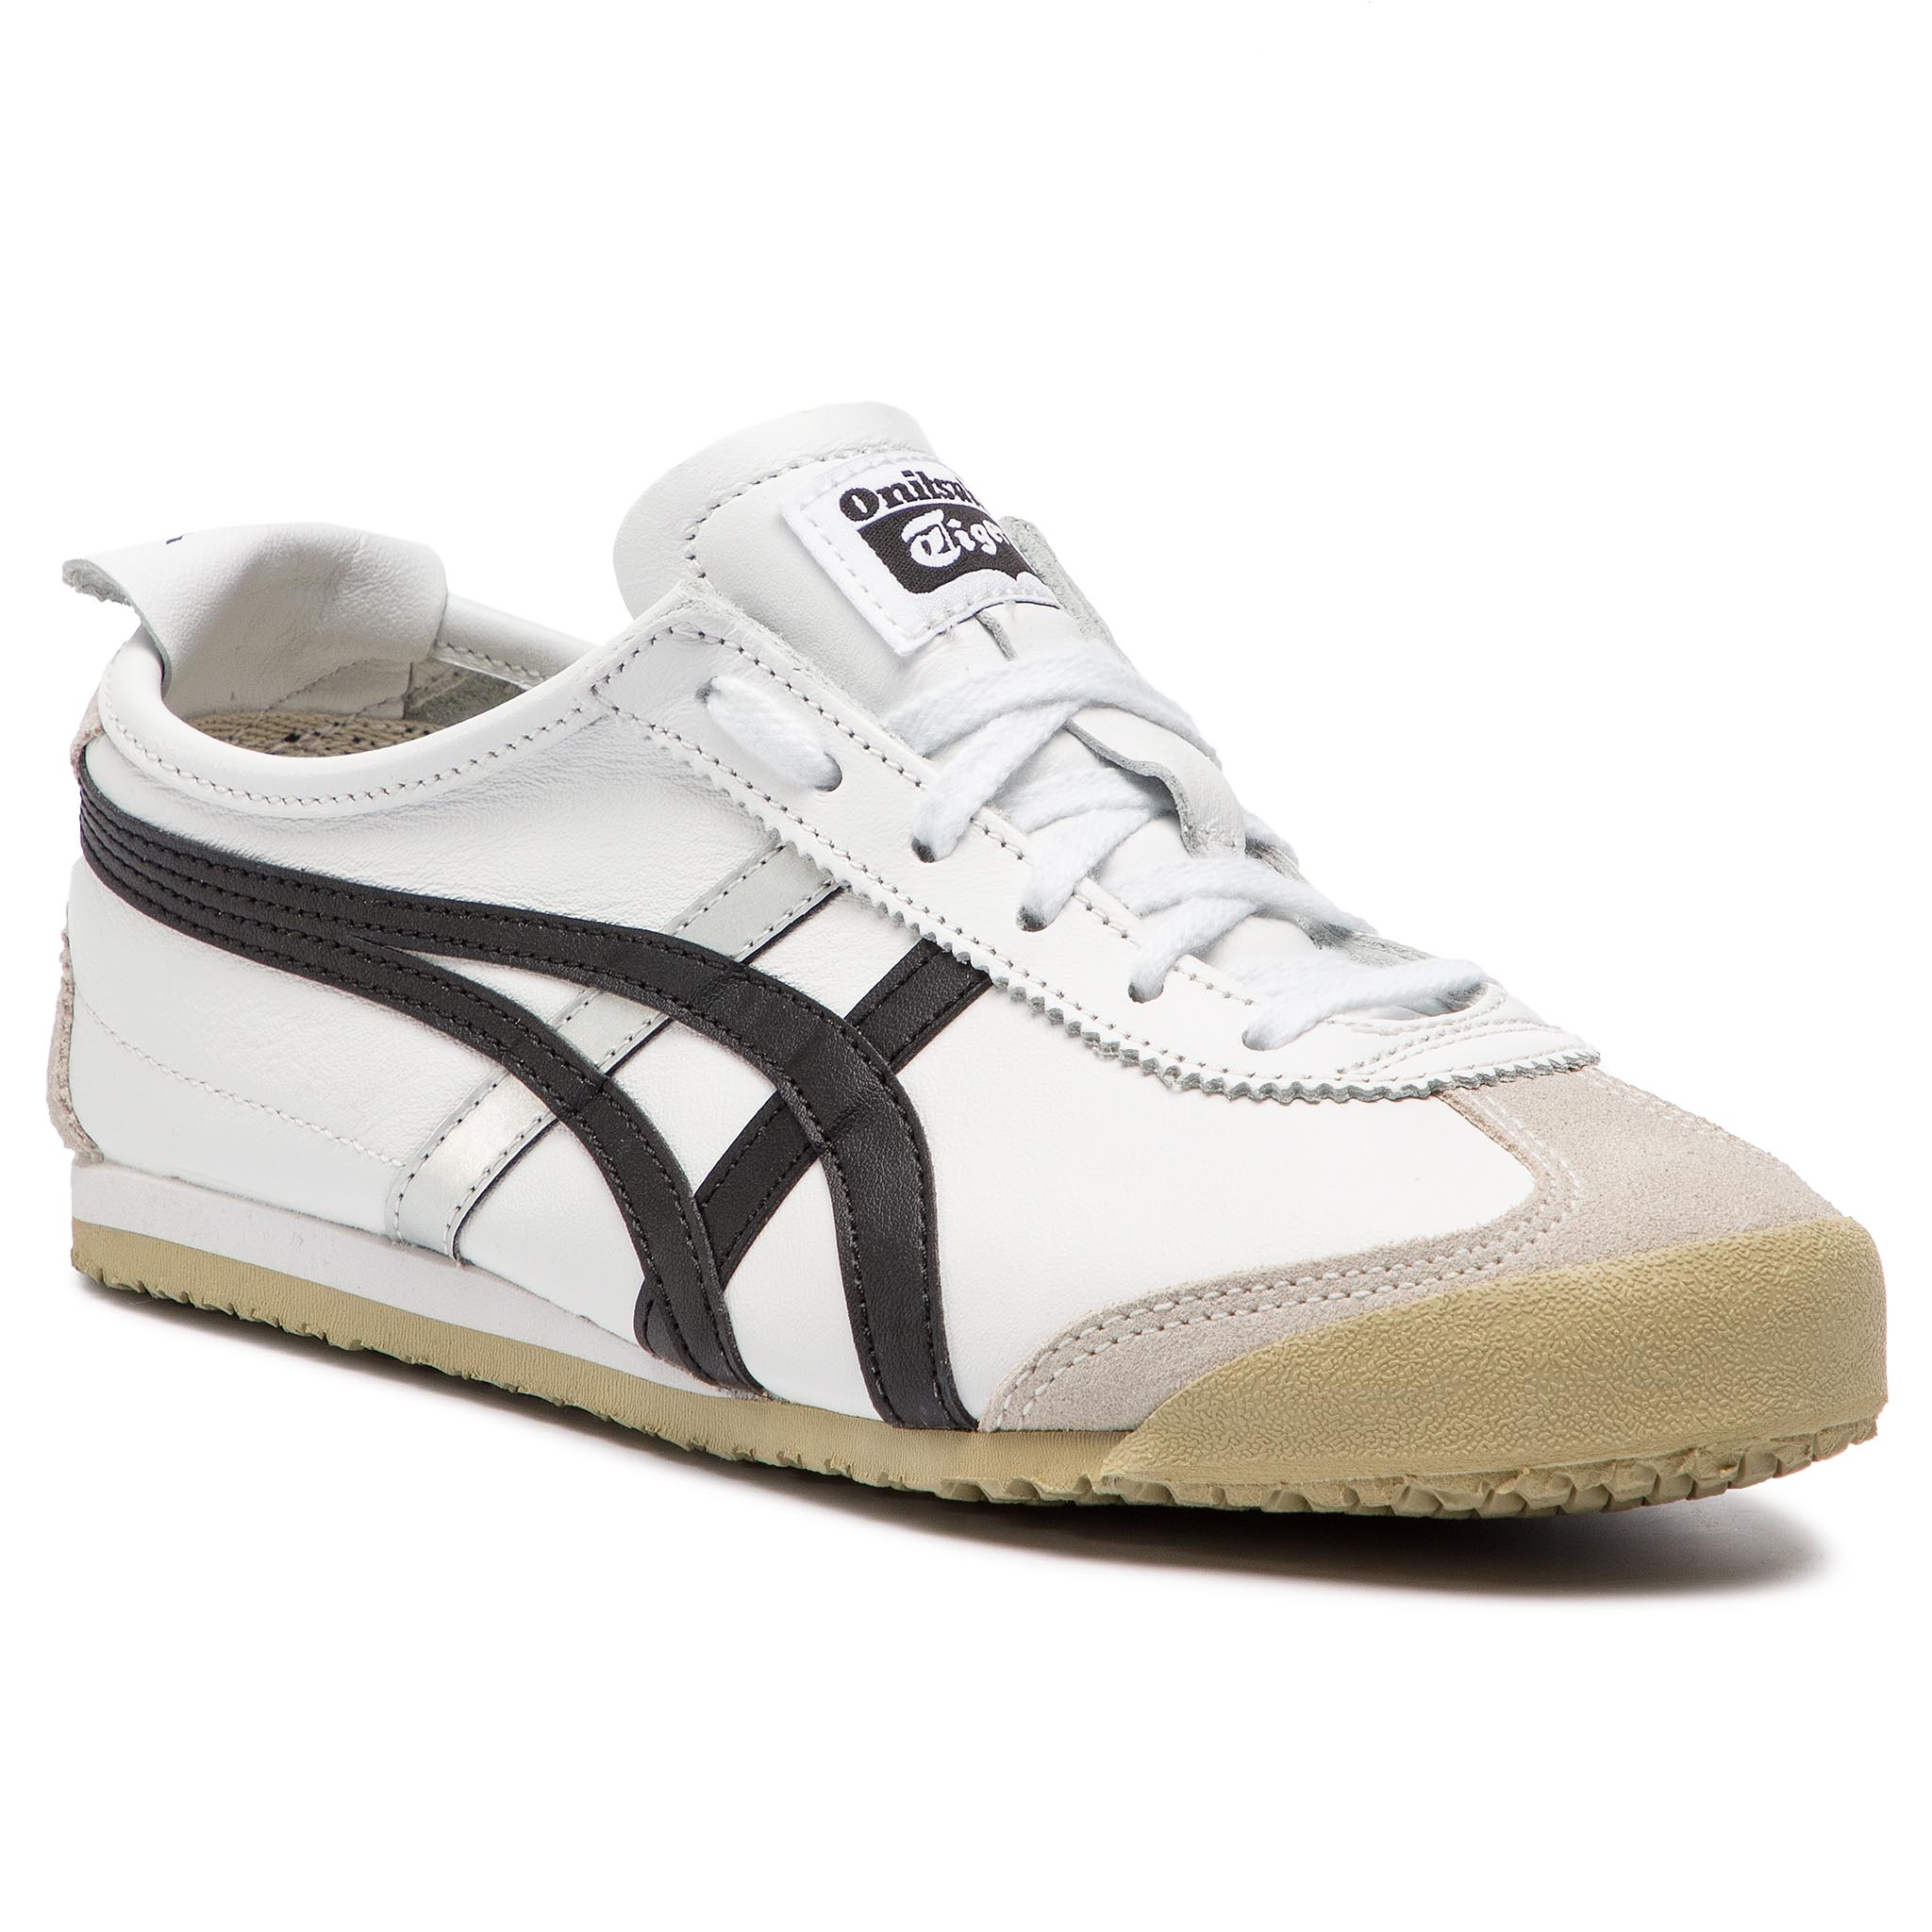 Sneaker Onitsuka Tiger Sneakers ONITSUKA TIGER - Mexico 66 DL408 White/Black 0190